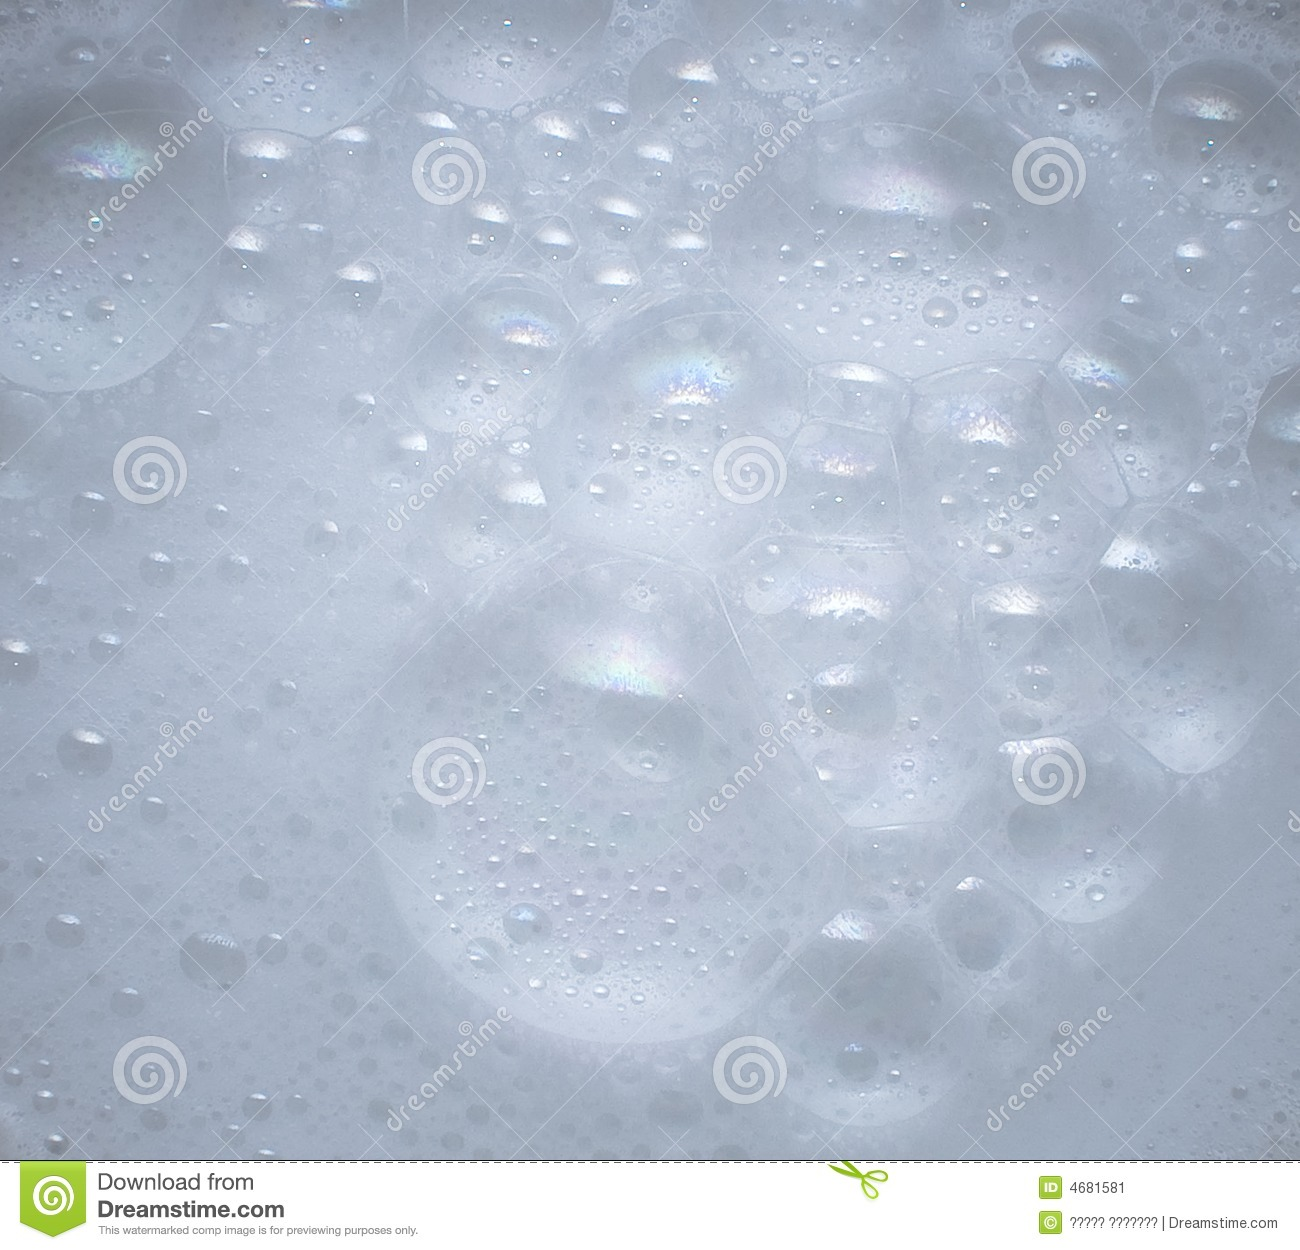 Soapsuds Background Air Bubbles Abstract Texture Stock Photo ...